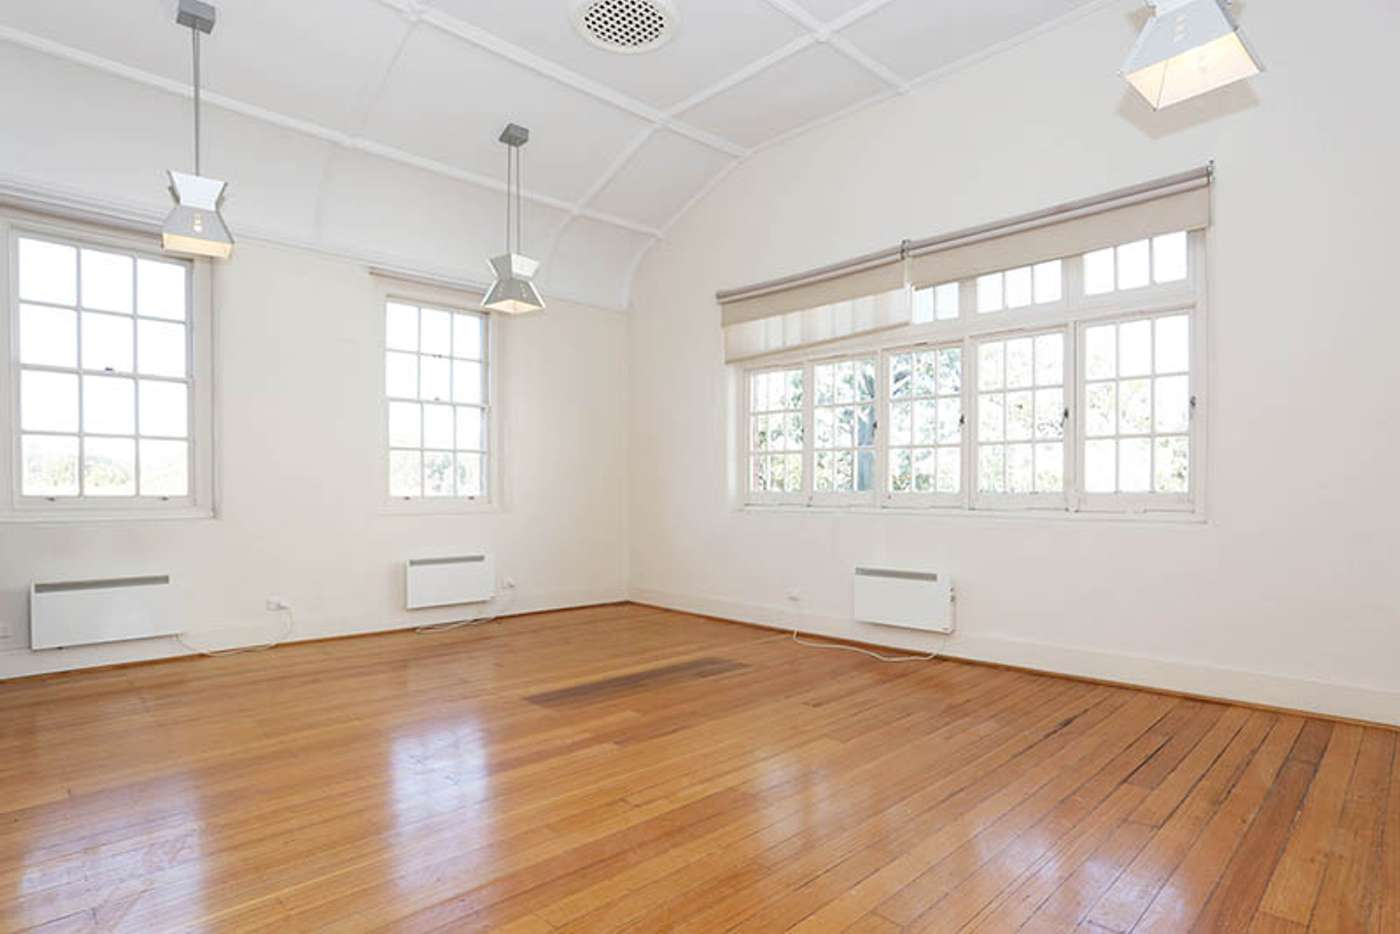 Main view of Homely apartment listing, 4/29 Manchester Lane, Parkville VIC 3052